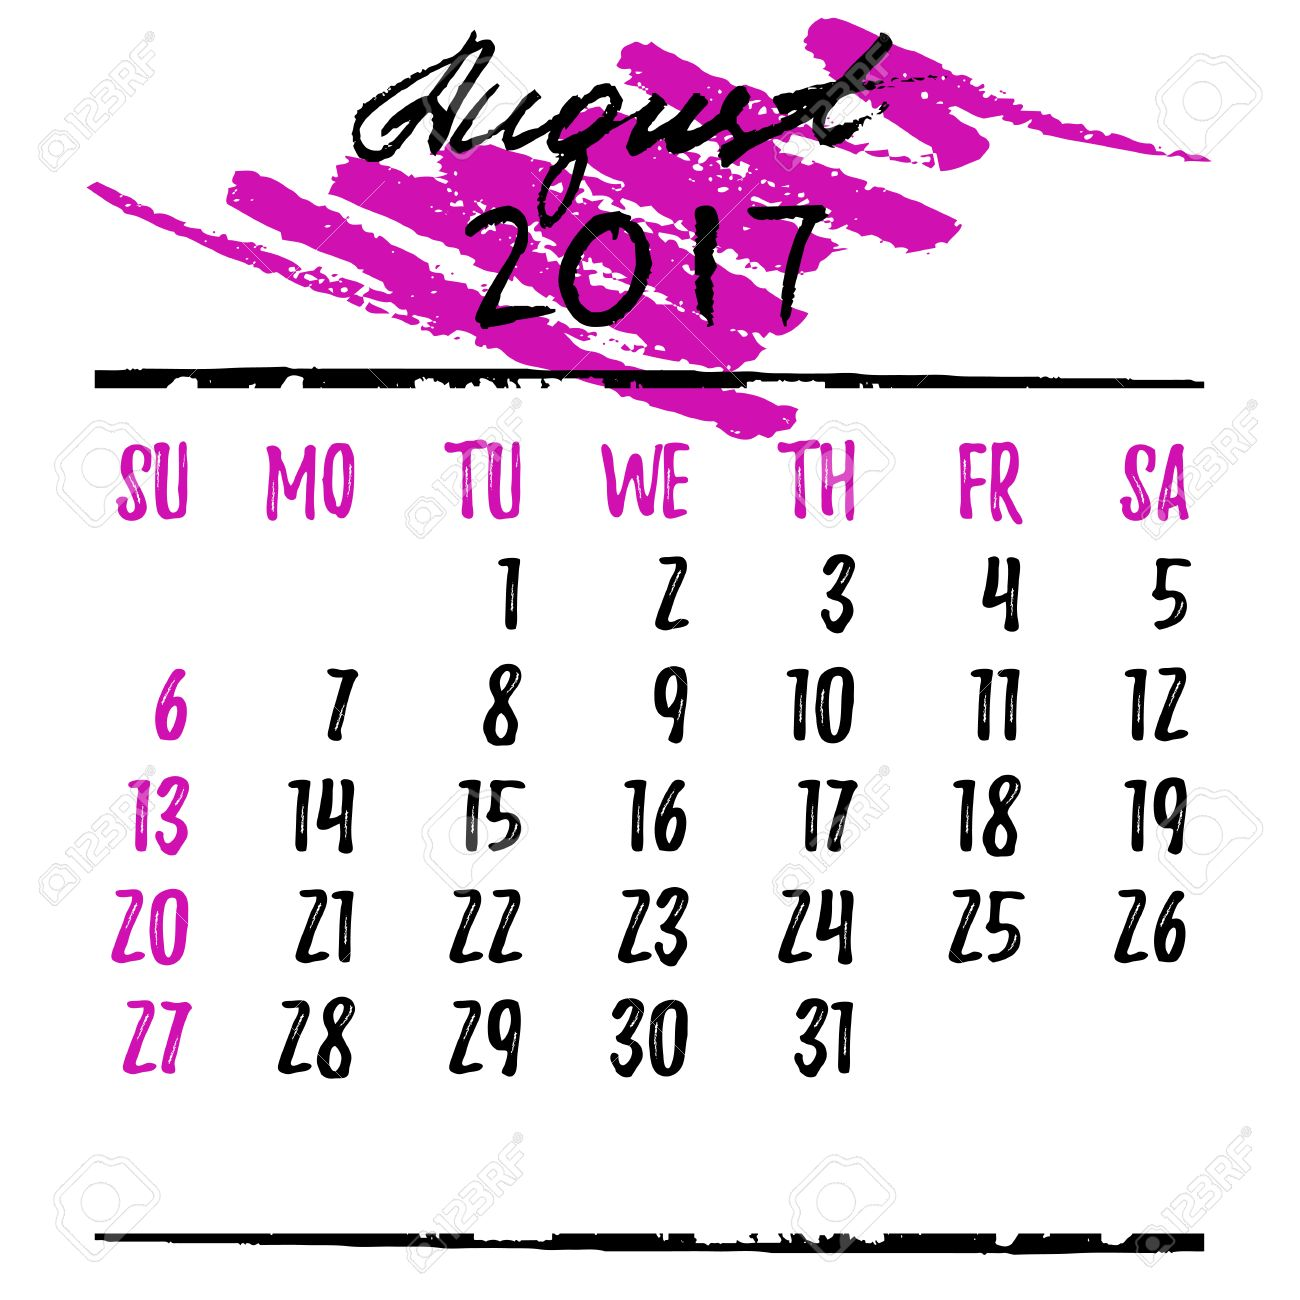 August clipart pink, August pink Transparent FREE for.